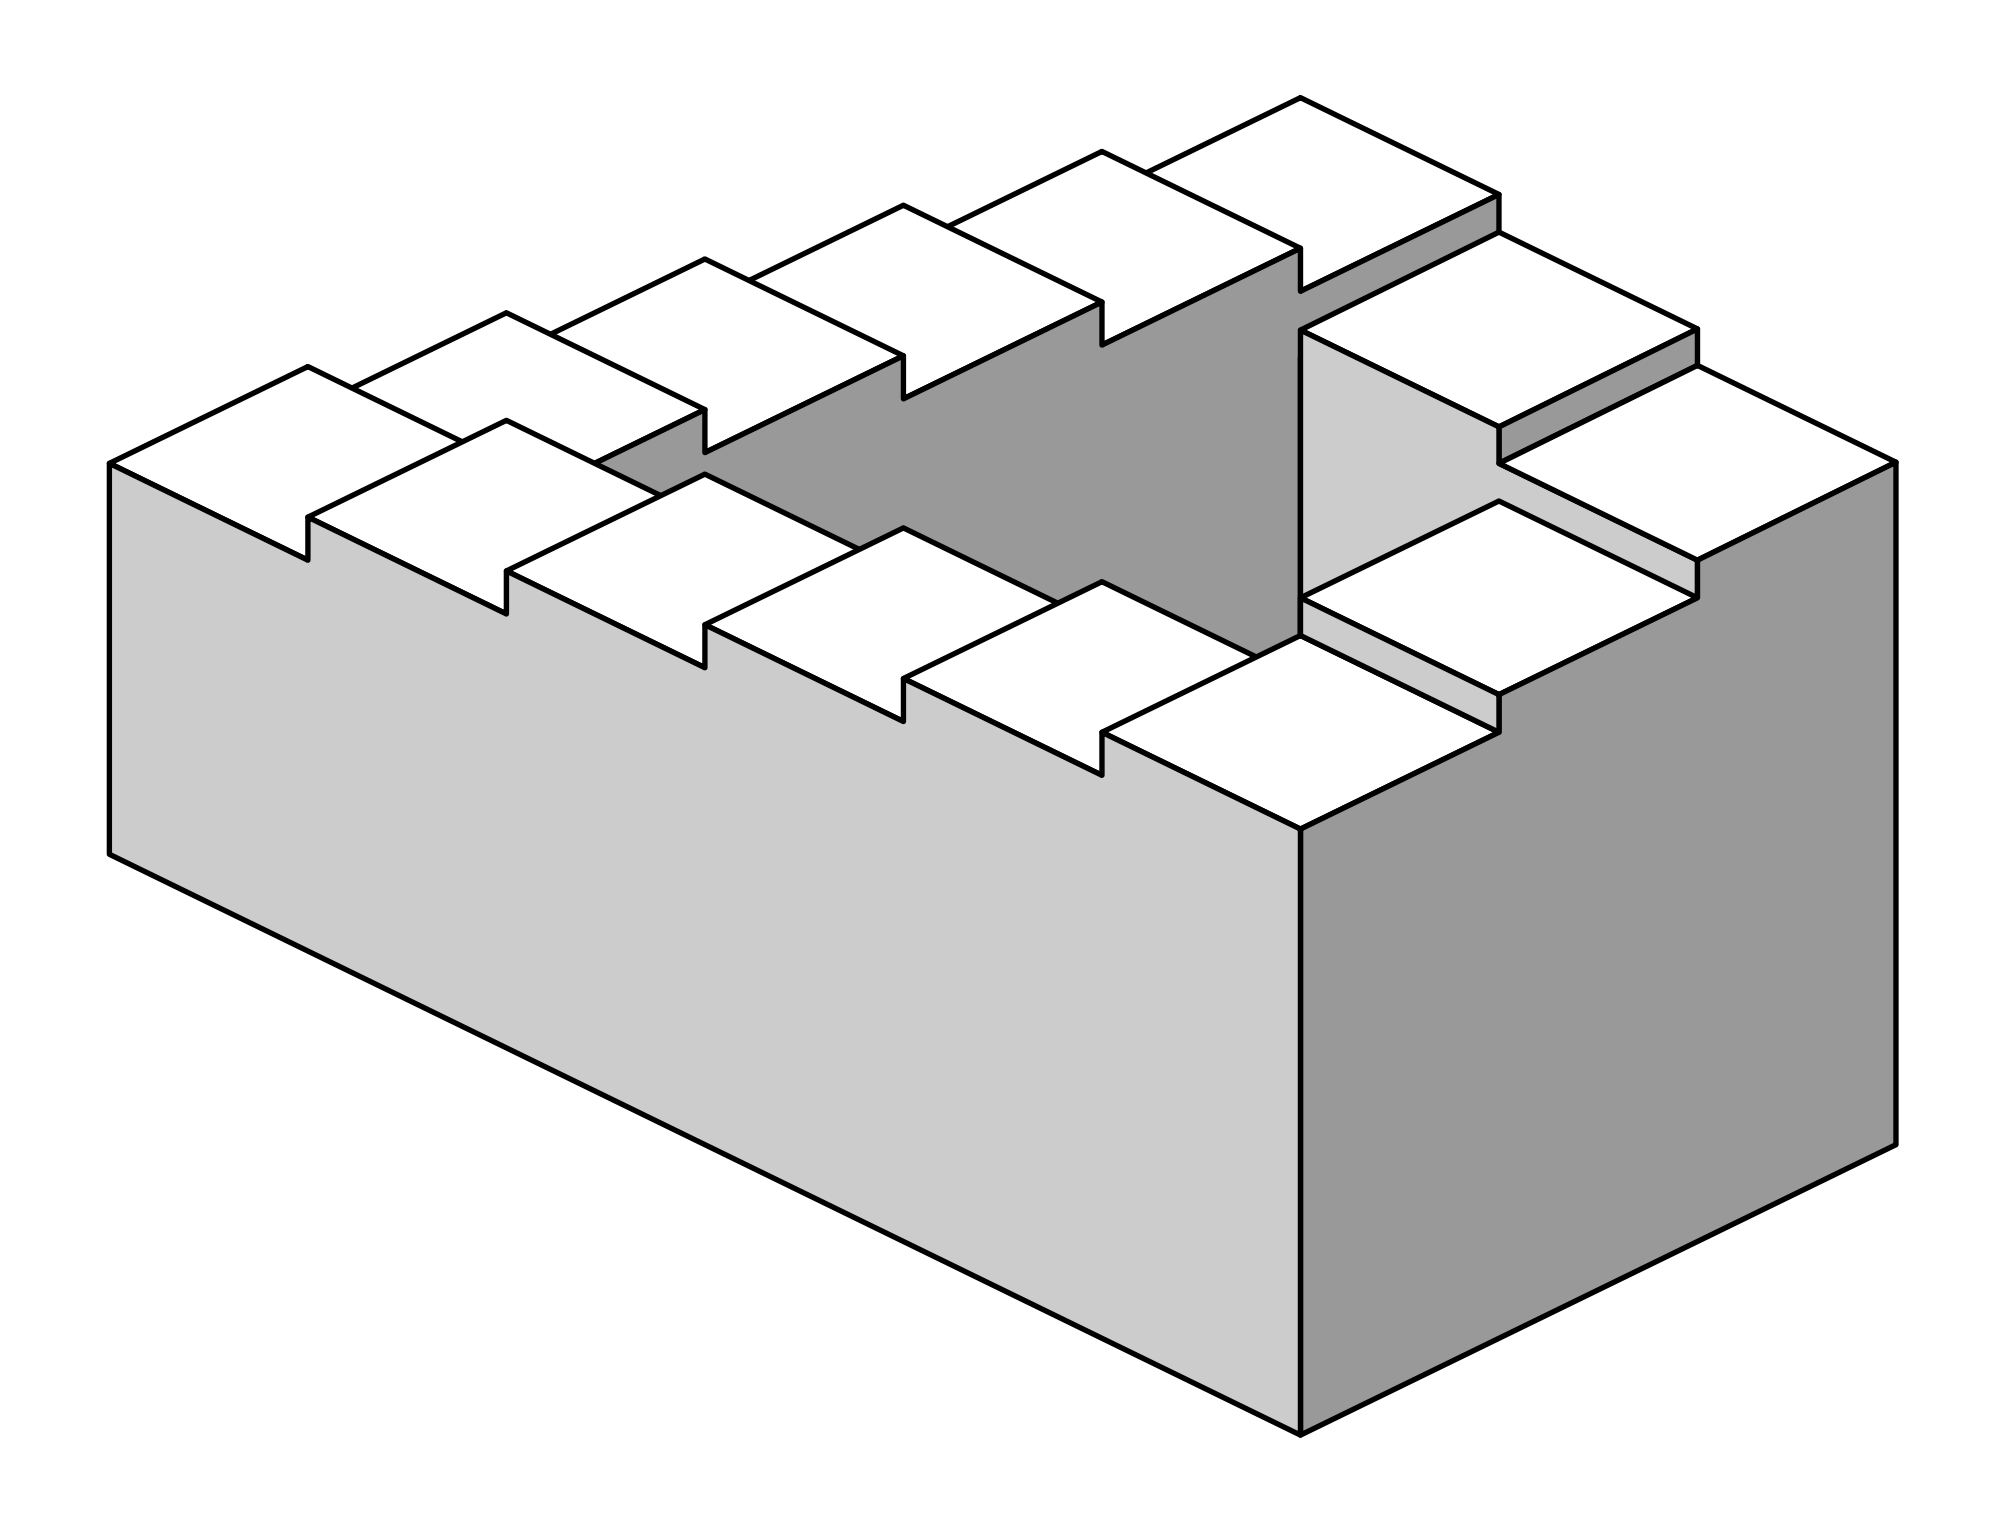 Illusions drawing. Penrose stairs wikipedia